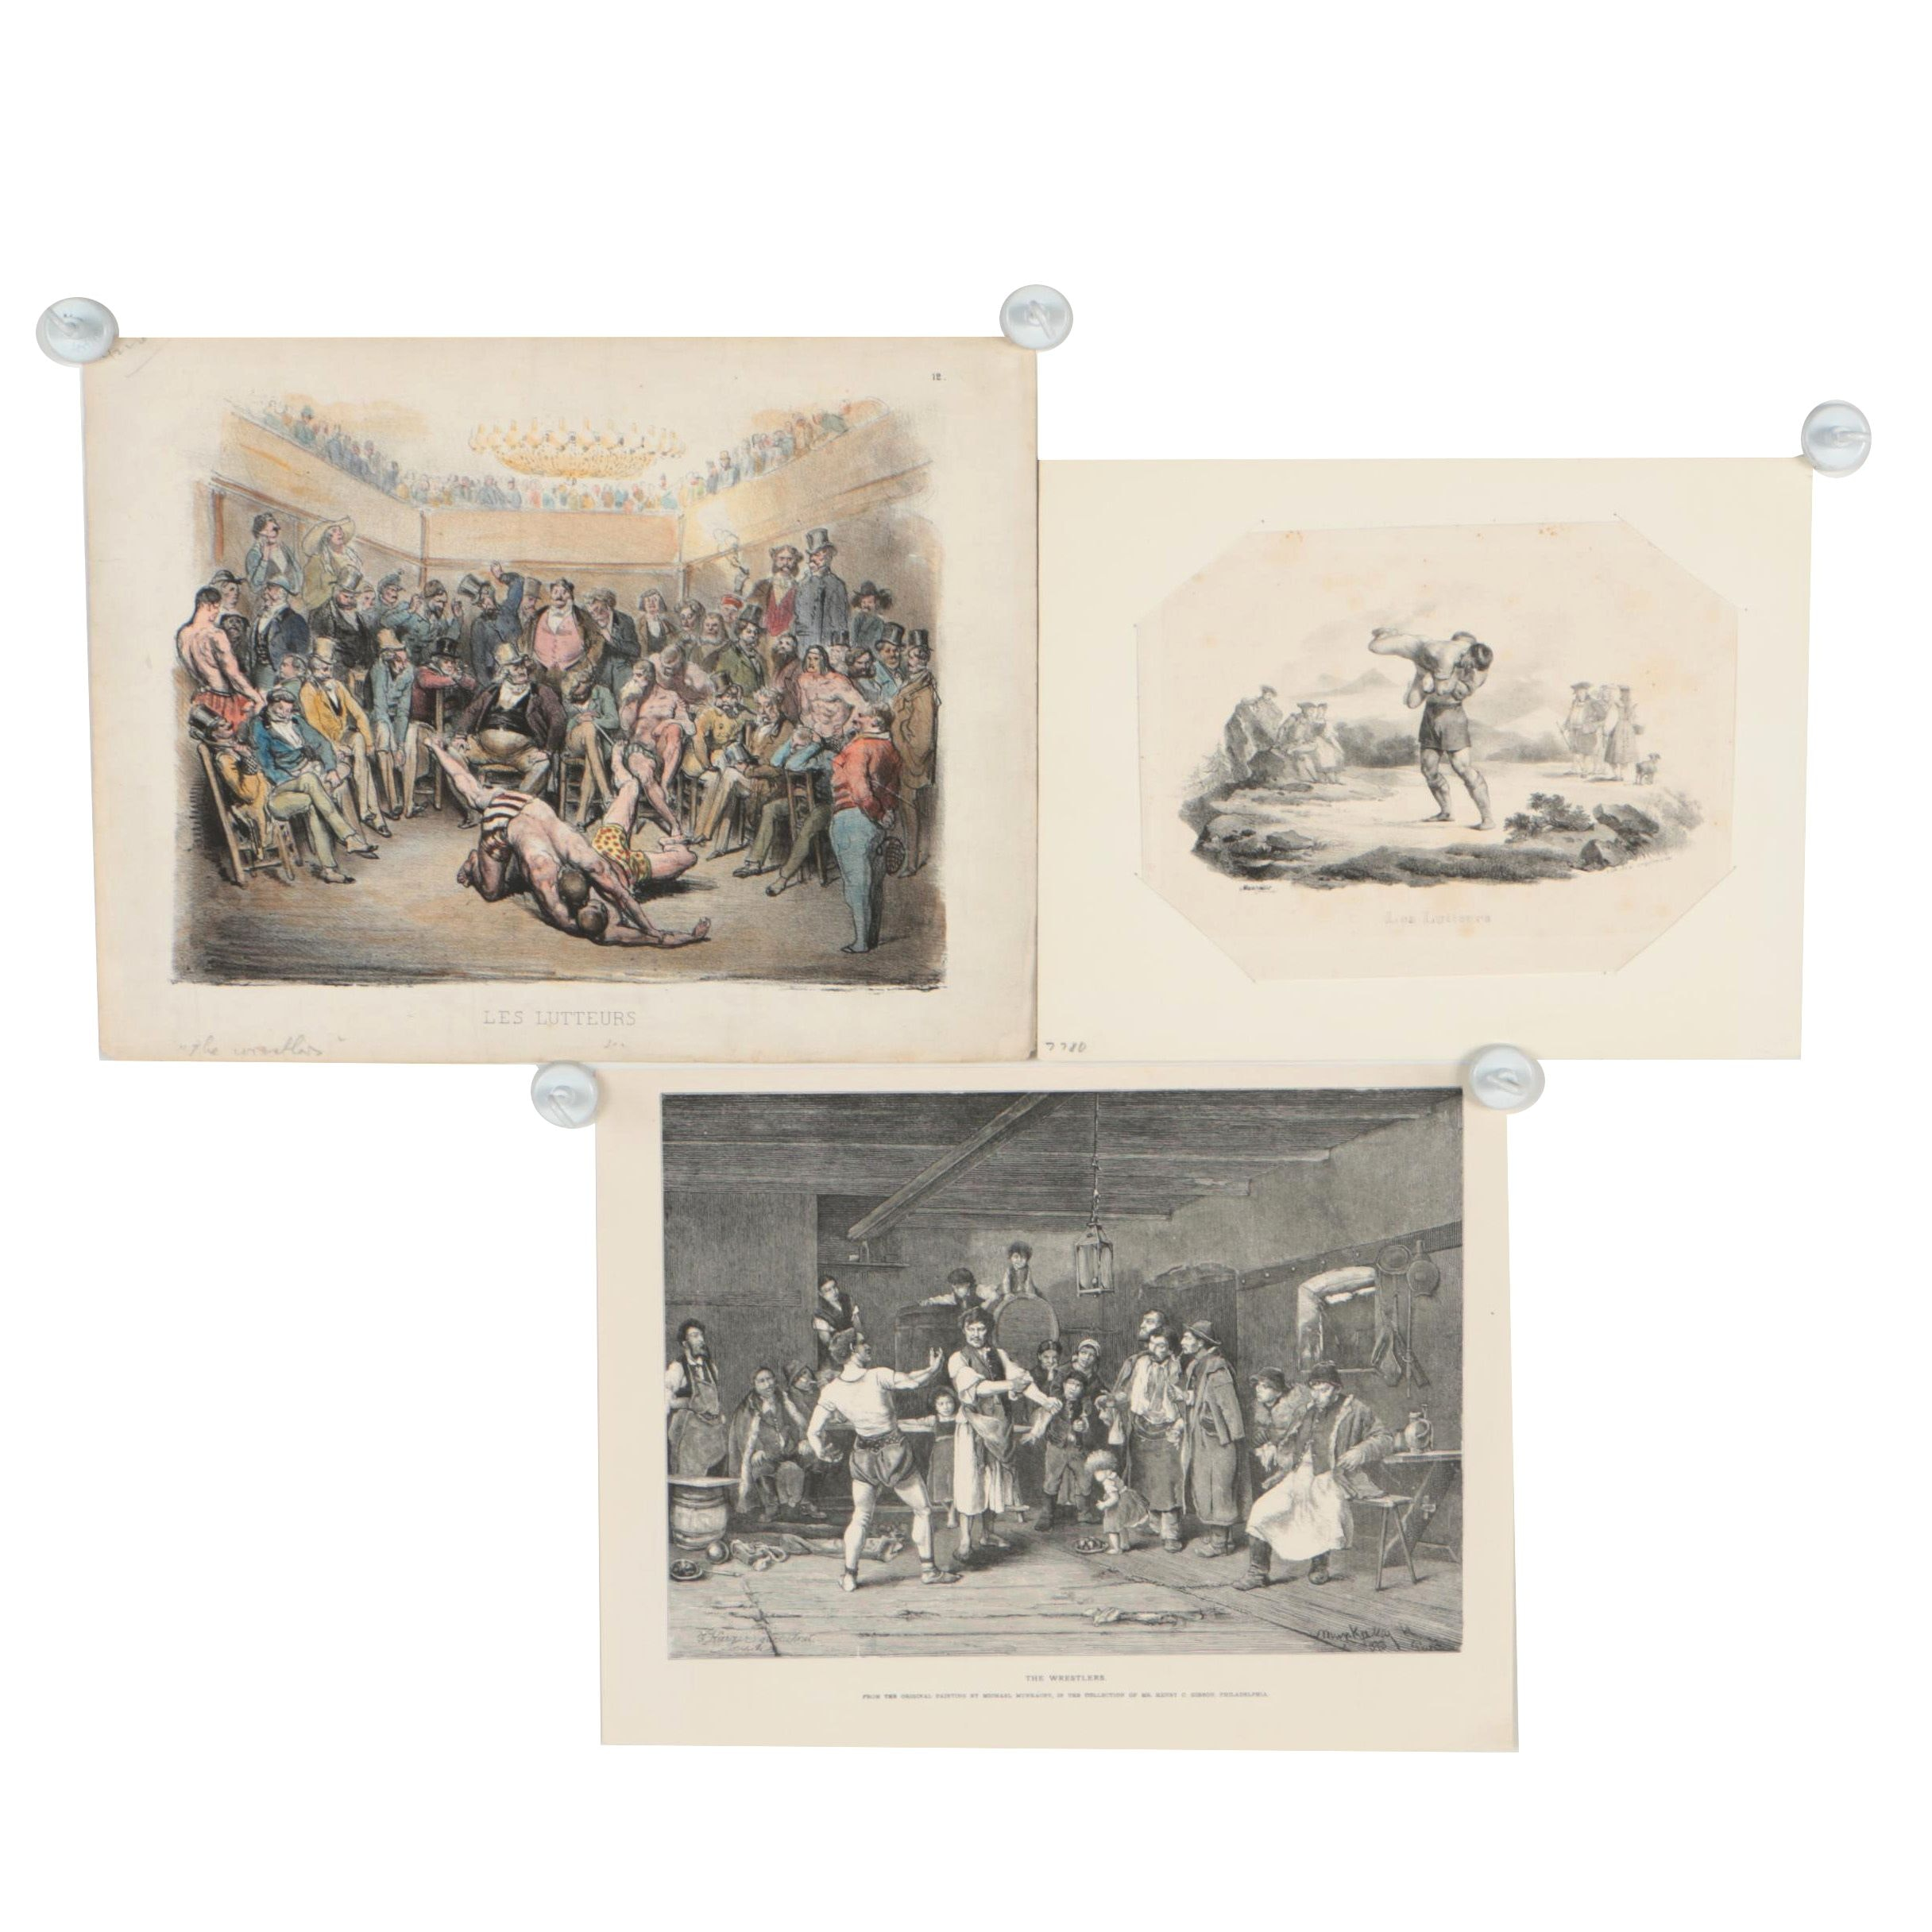 Gustave Doré and Georg Engelmann Lithographs and Wood Engraving after Munkácsy